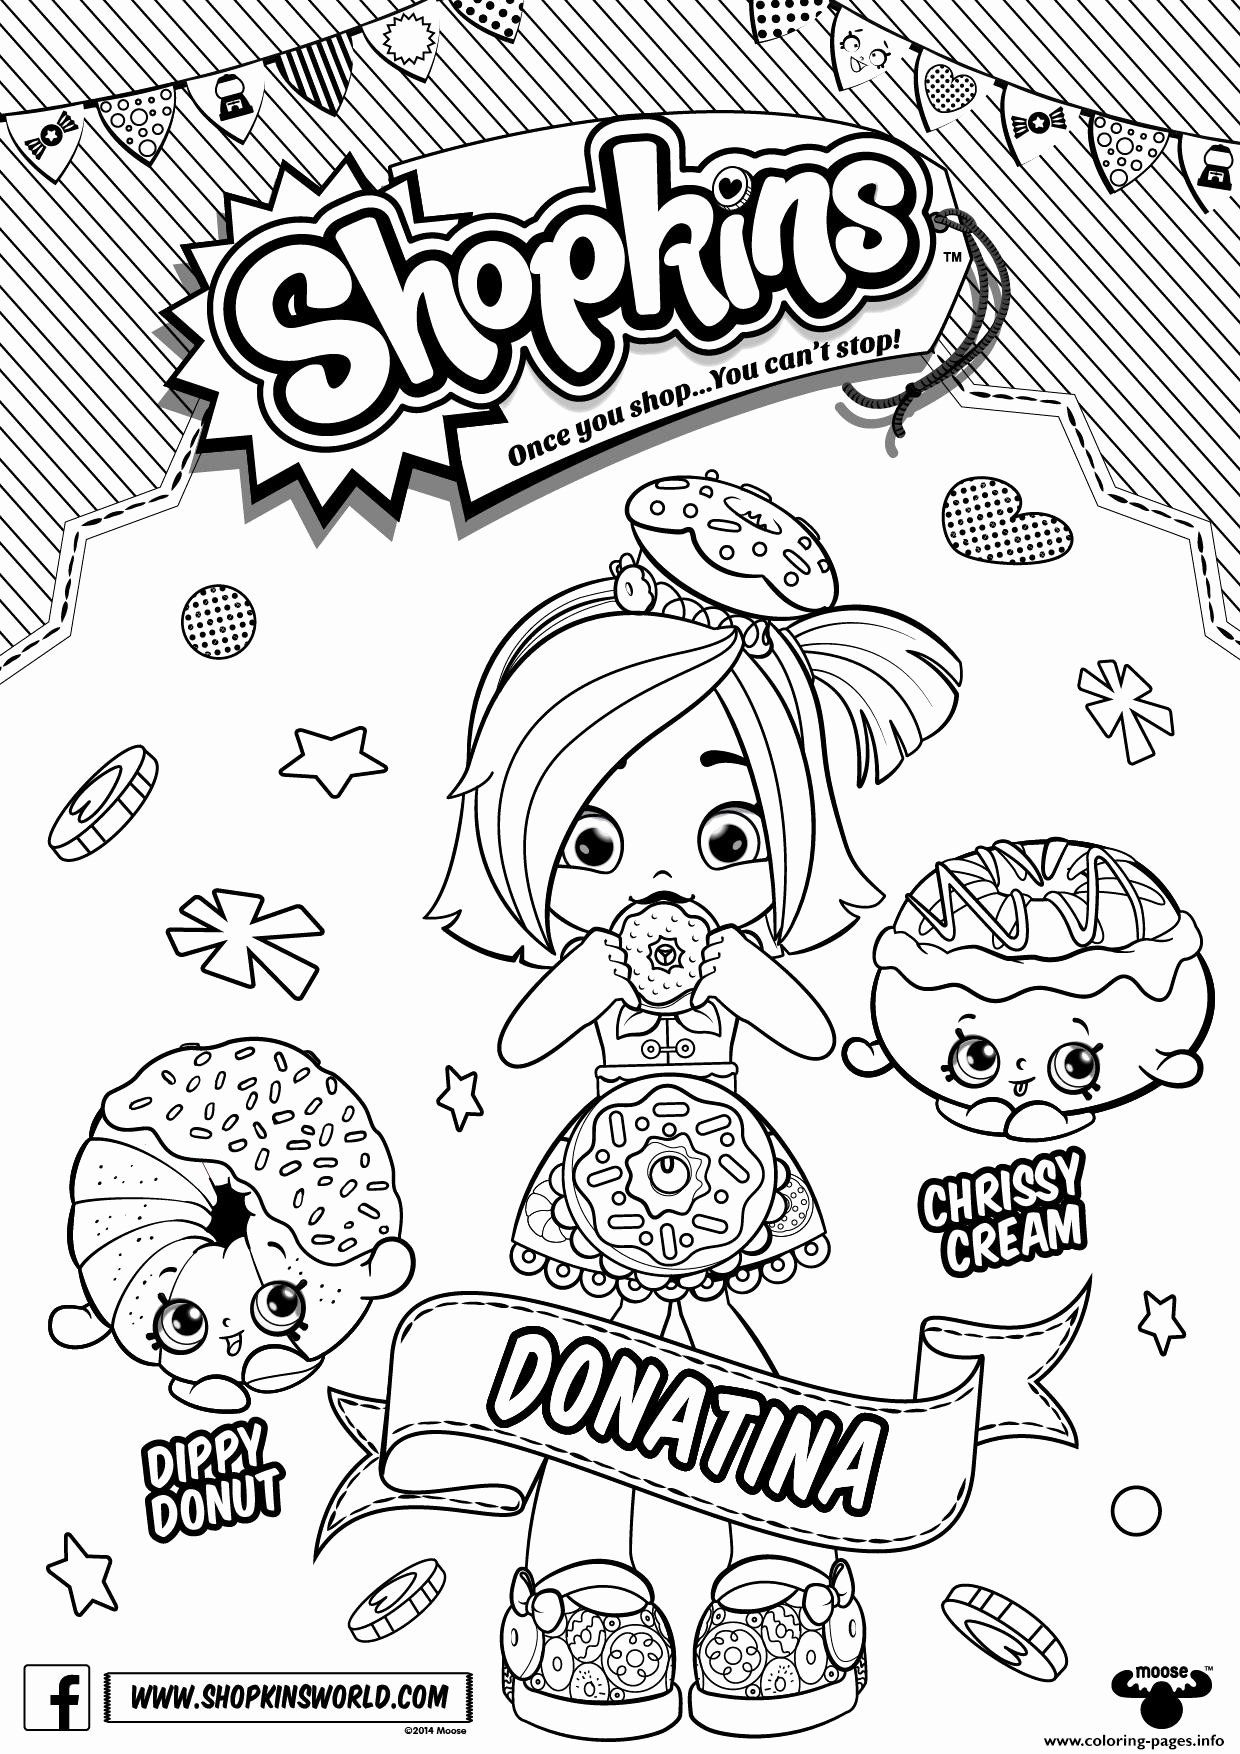 Pin By Bar On Coloring Pages Shopkins Colouring Pages Shopkin